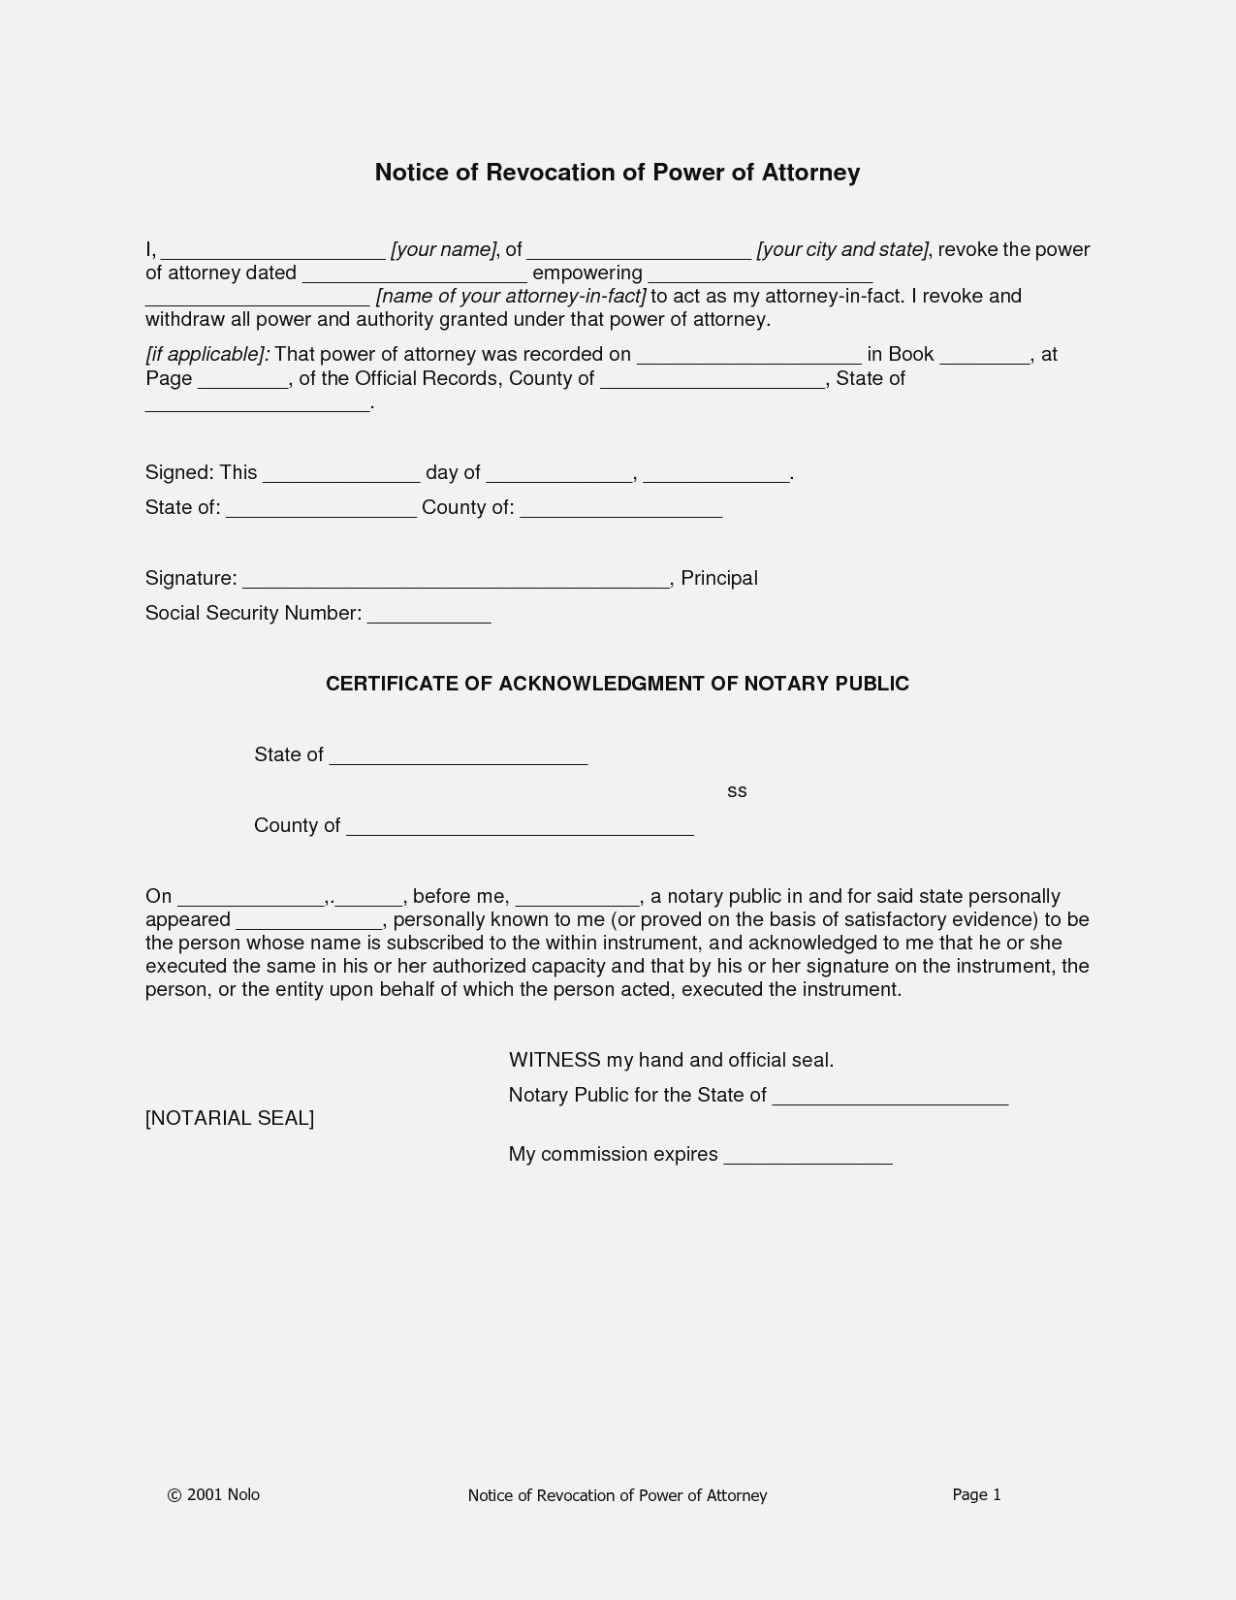 Power Of Attorney Form Free Printable Best Of Power Attorney Format - Free Printable Revocation Of Power Of Attorney Form